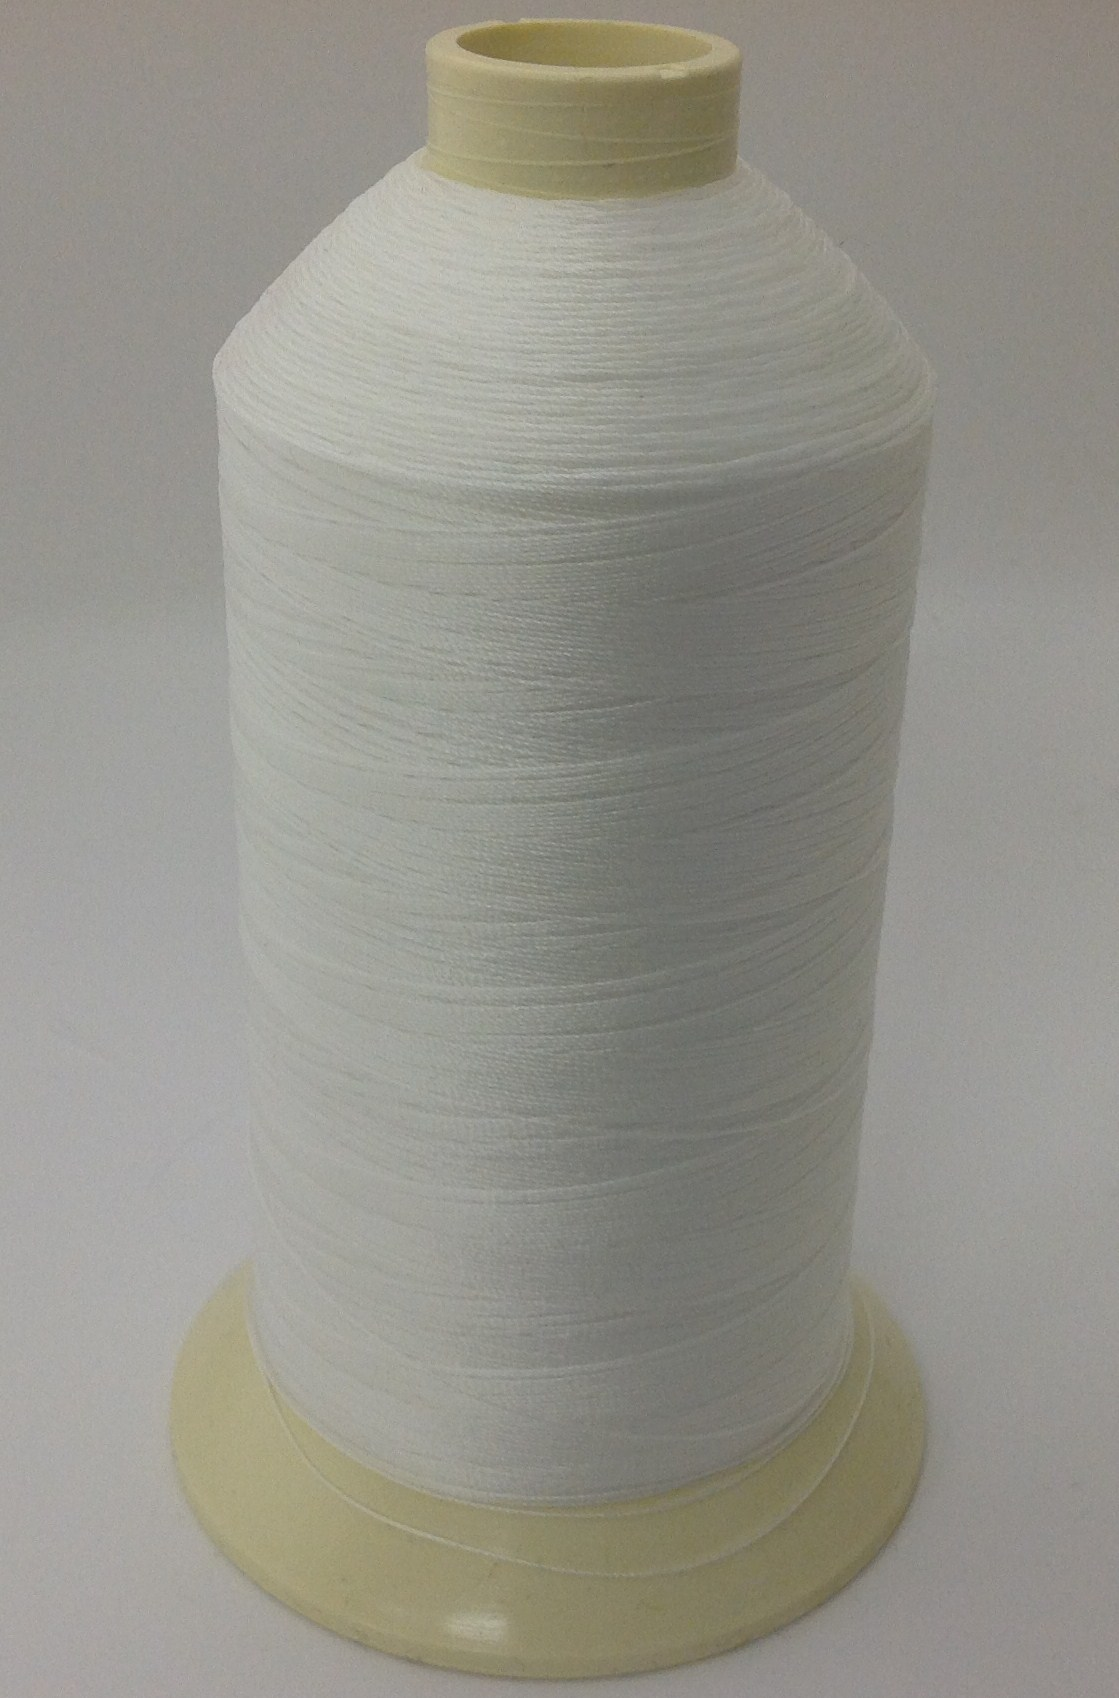 138 Polyester Thread 1 lb.  Available in Black and White